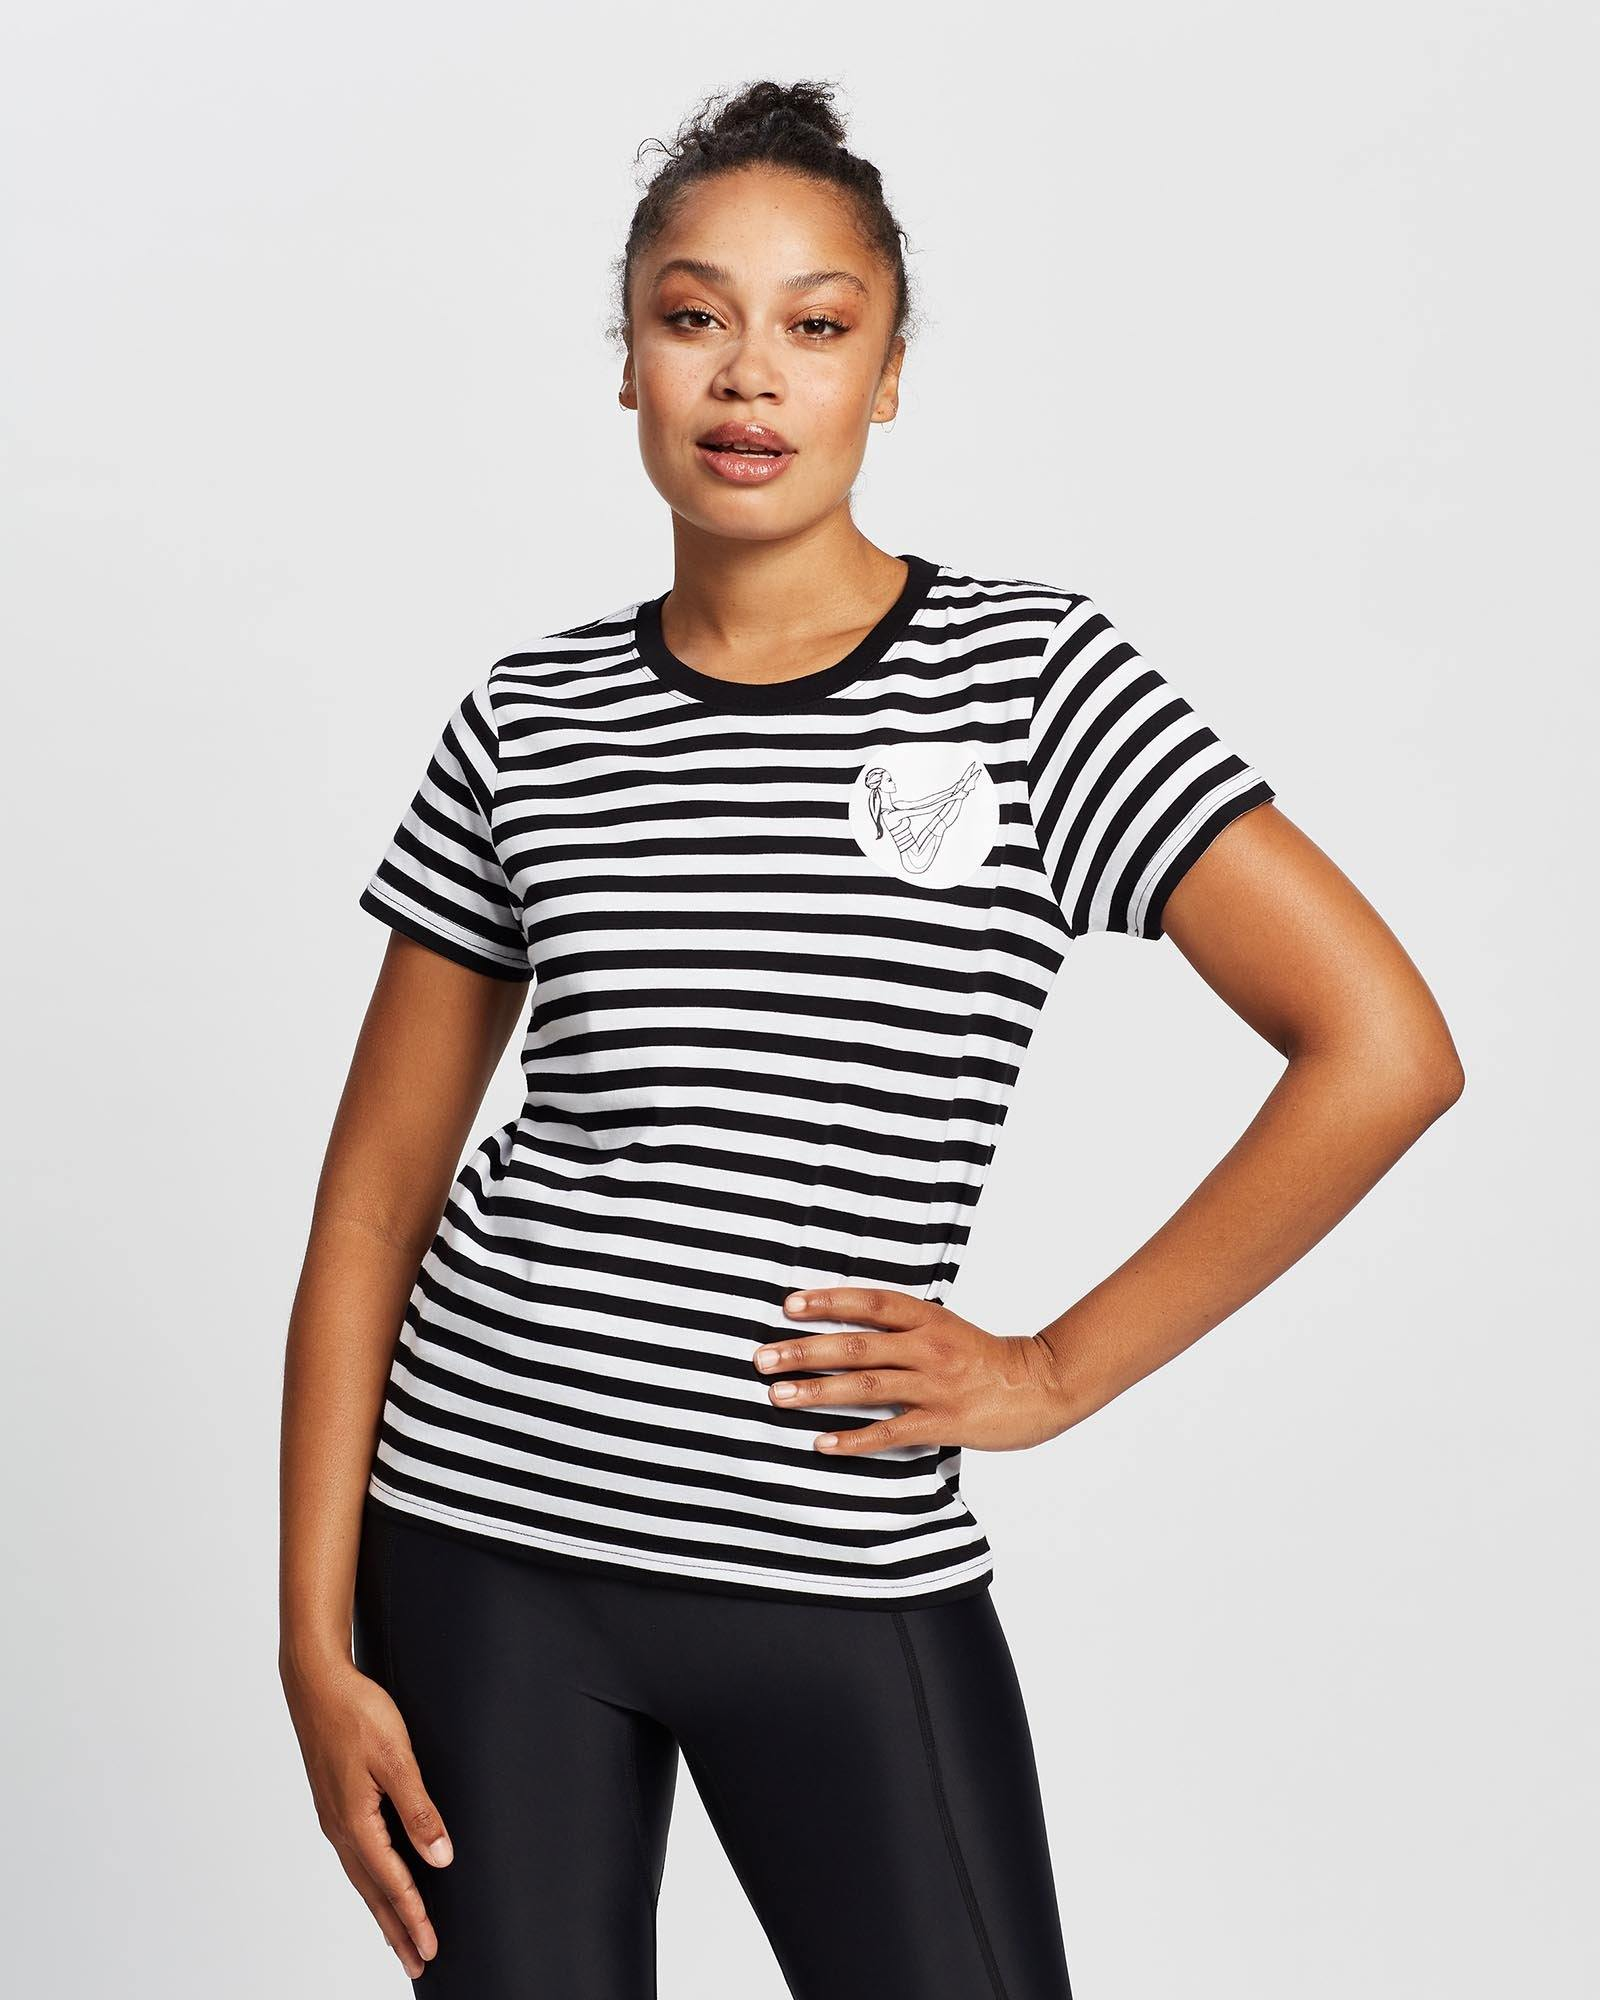 Companion Minor Major Stripe T-shirt